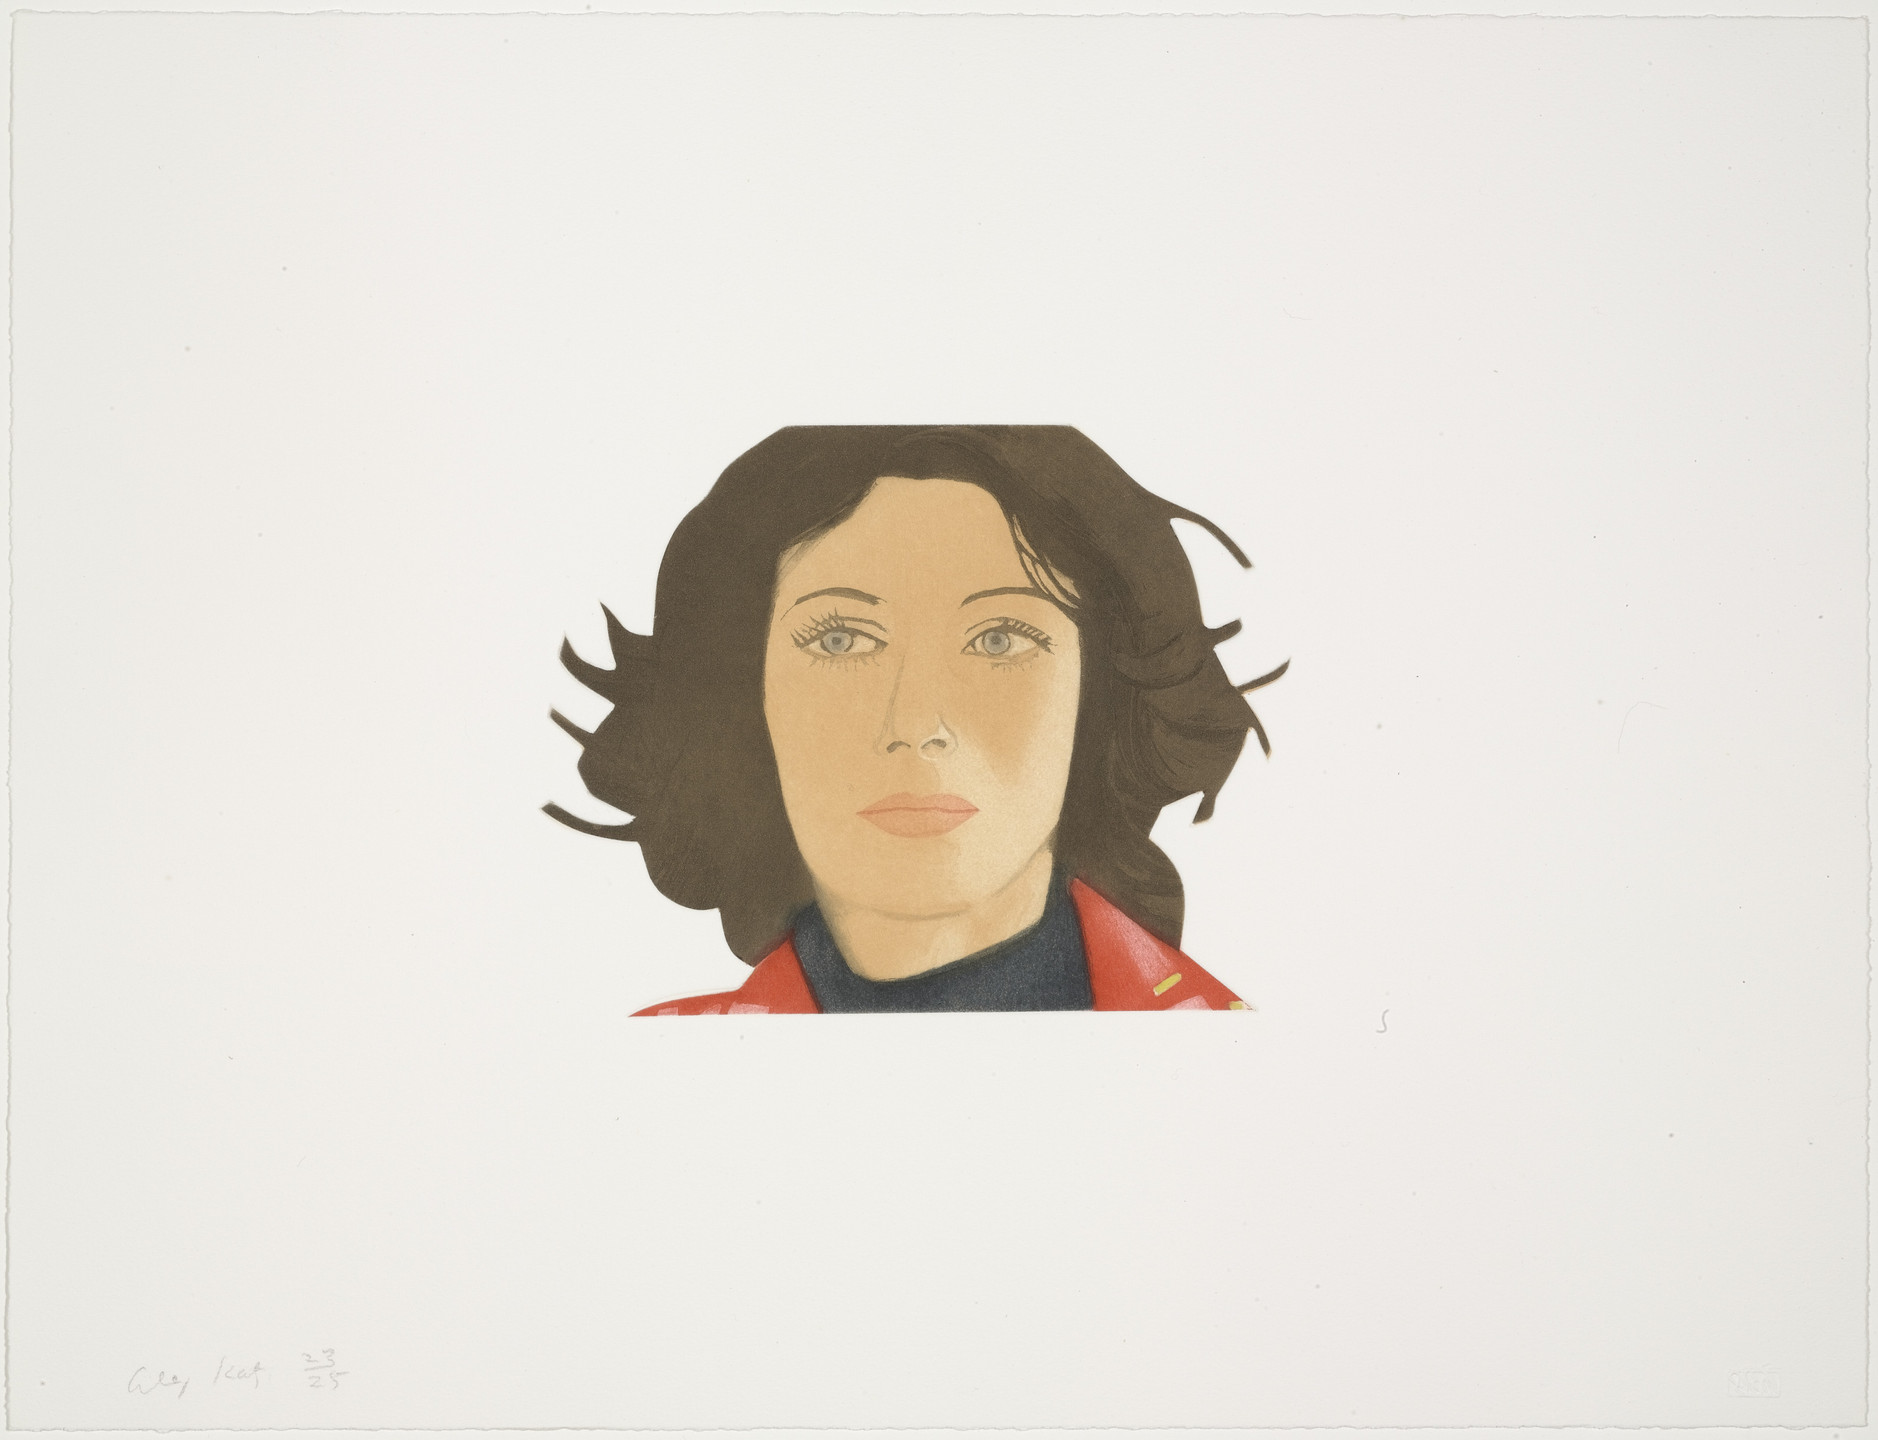 Alex Katz. Ann Lauterbach from Face of the Poet. 1978